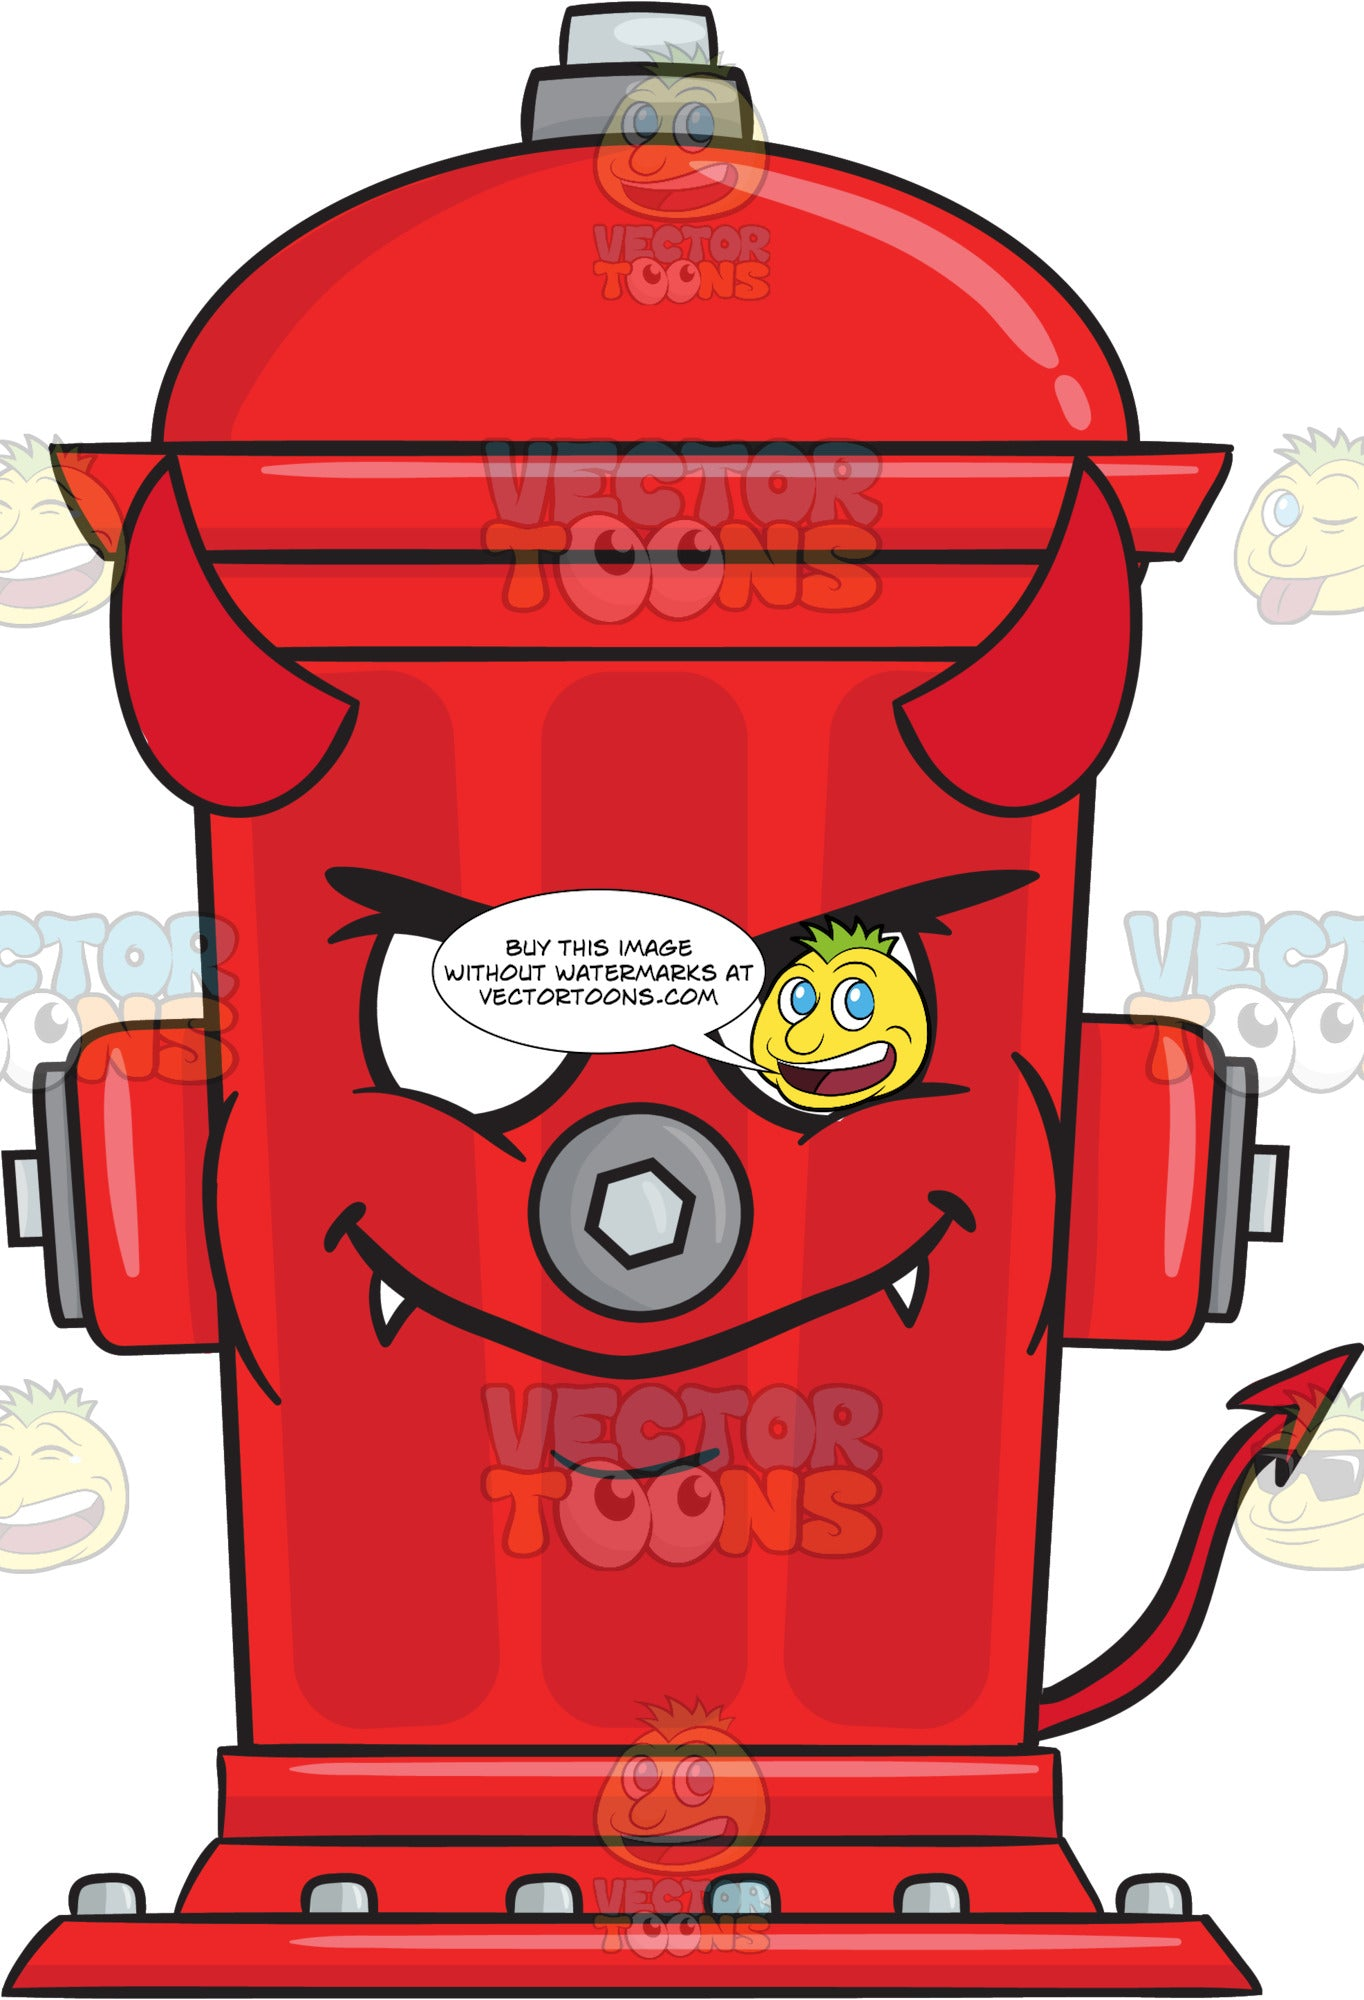 Devilish Looking Fire Hydrant With Fangs Horns And Tail Emoji